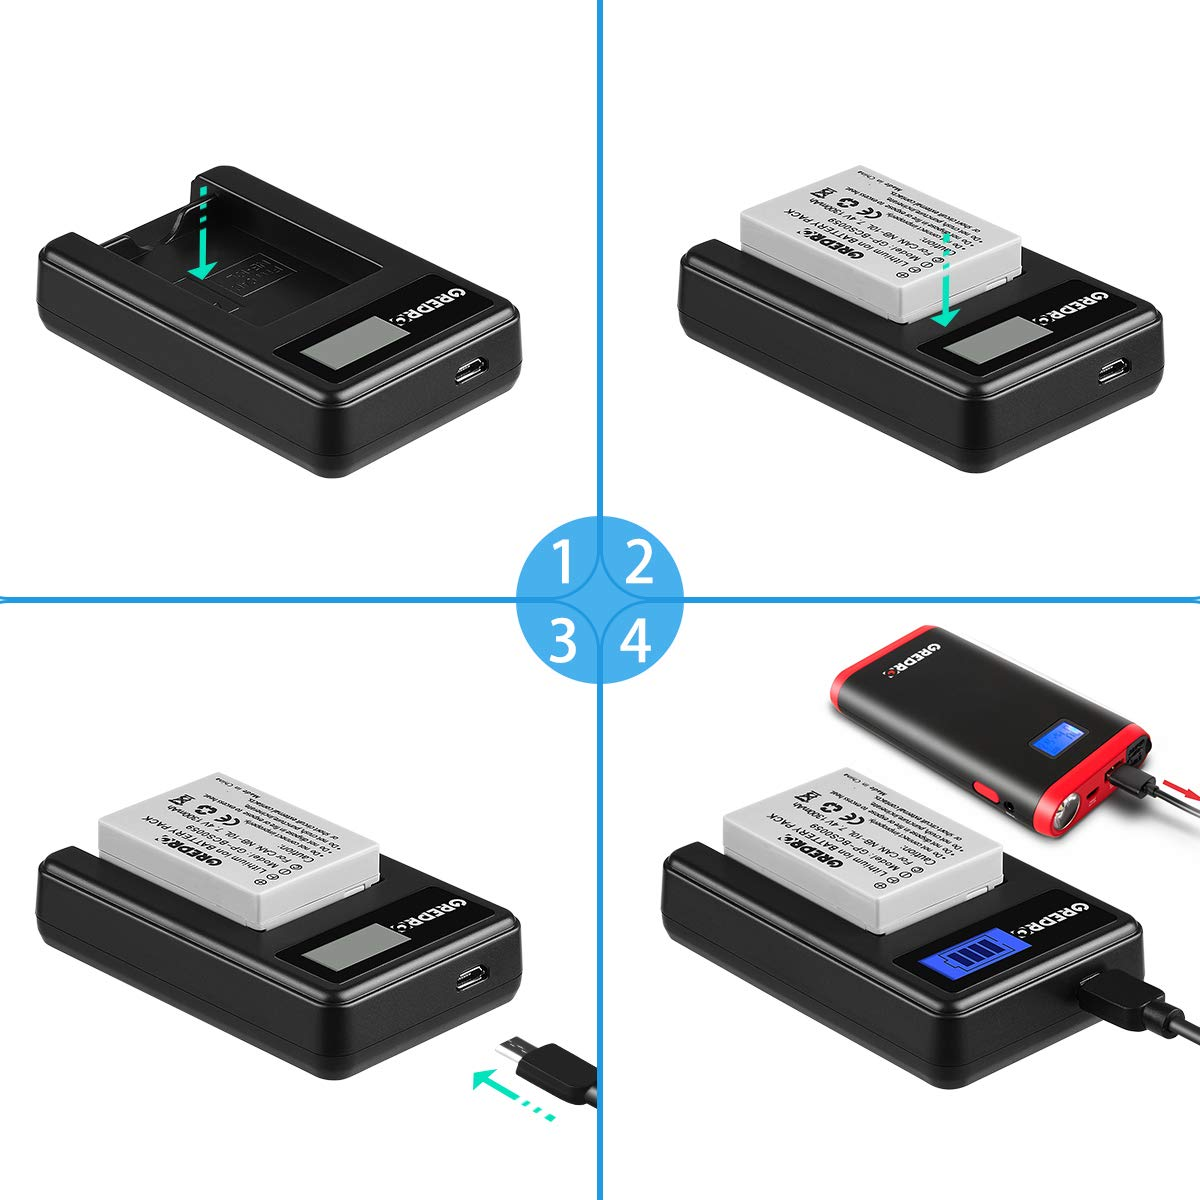 D3300 D5200 D3100 D5100 DF Coolpix P7000 D5300 D3200 Grepro EN-EL14 EN-EL14A Dual Slot LCD USB Camera Battery Charger Set 2 Pack Rechargeable Lithium-Ion Battery Charger Kit 100/% Compatible with Nikon D5600 P7100 No Memory Effect D5500 P7200